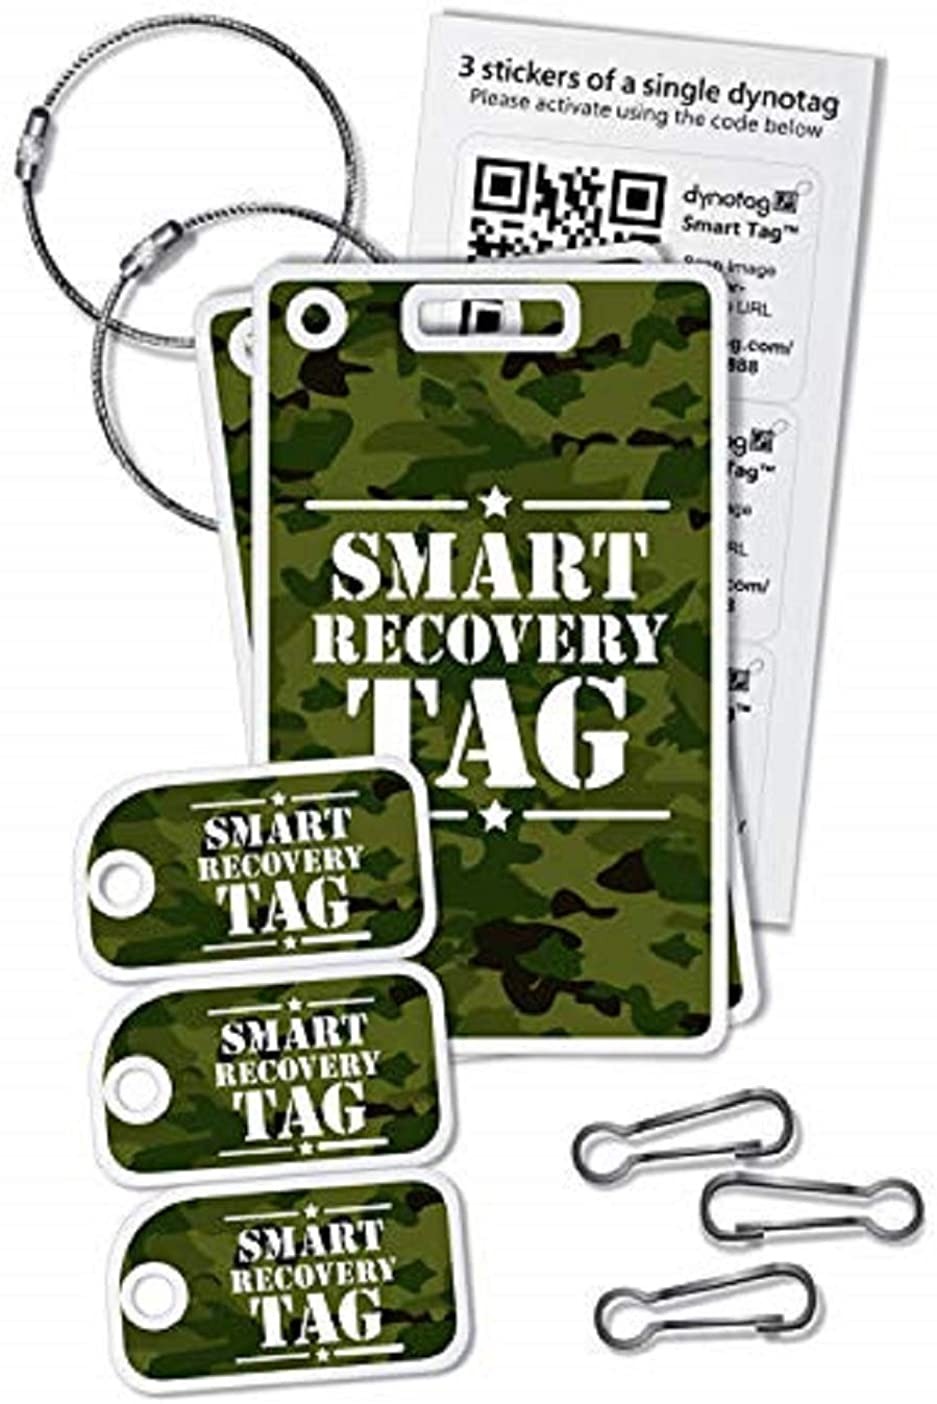 Dynotag CAMO Deployment Kit: A Starter Assortment of Our Popular Smart Tags with DynoIQ & Lifetime Recovery Service!